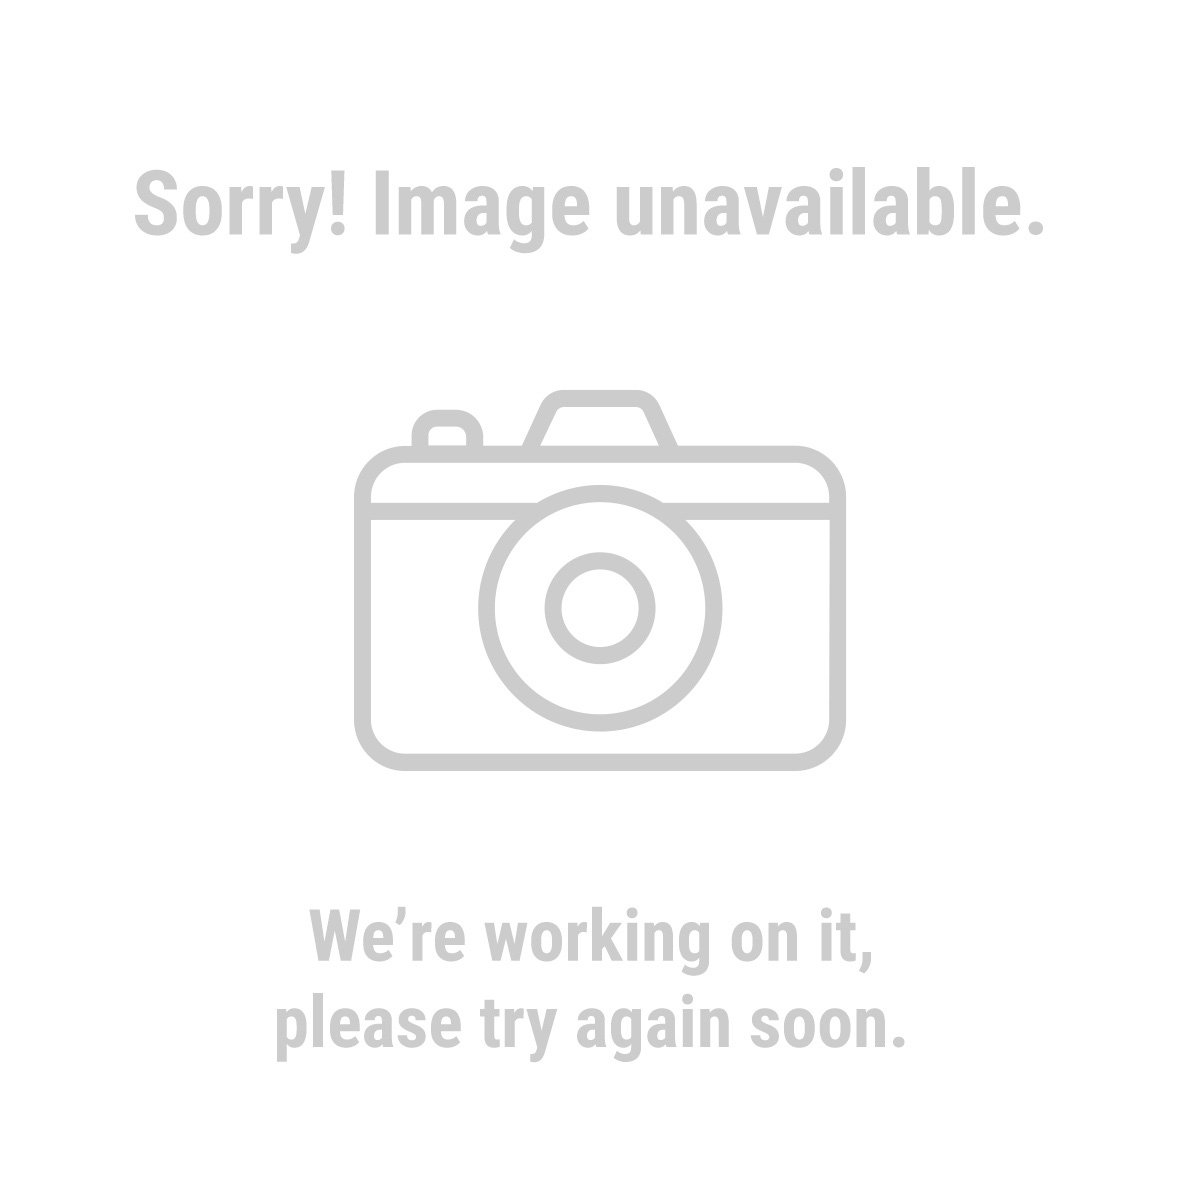 10 Ft X 17 Ft Portable Garage